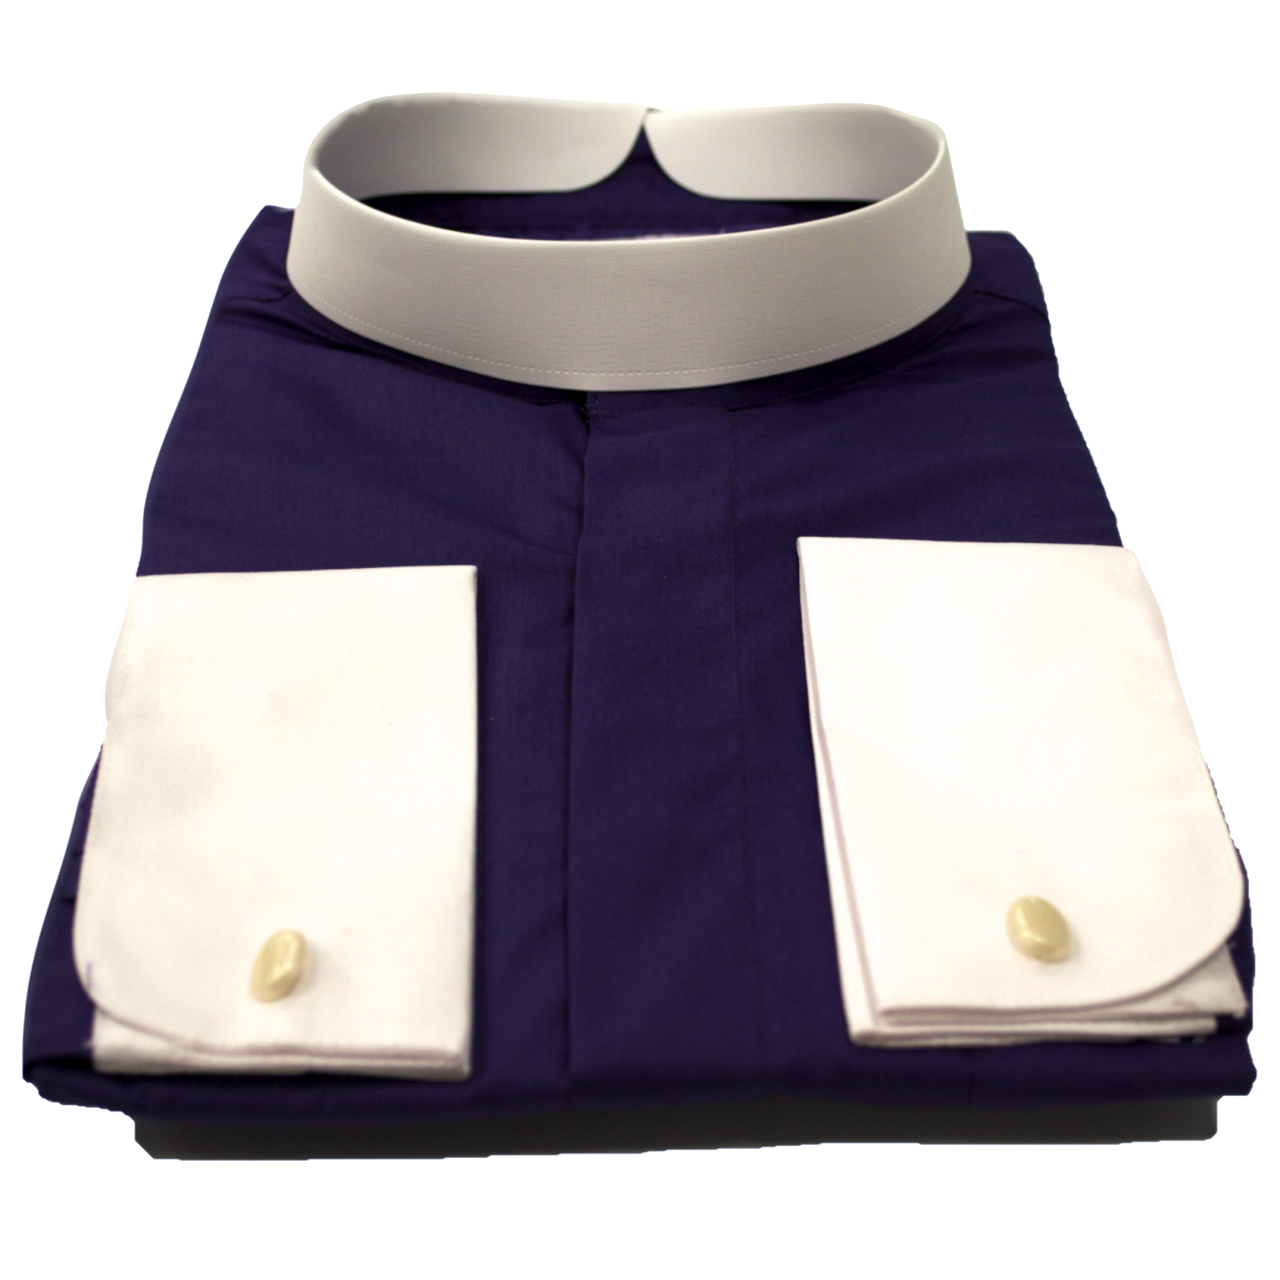 206. Men's Full-Collar Banded Clergy Shirt - Purple with White Cuffs